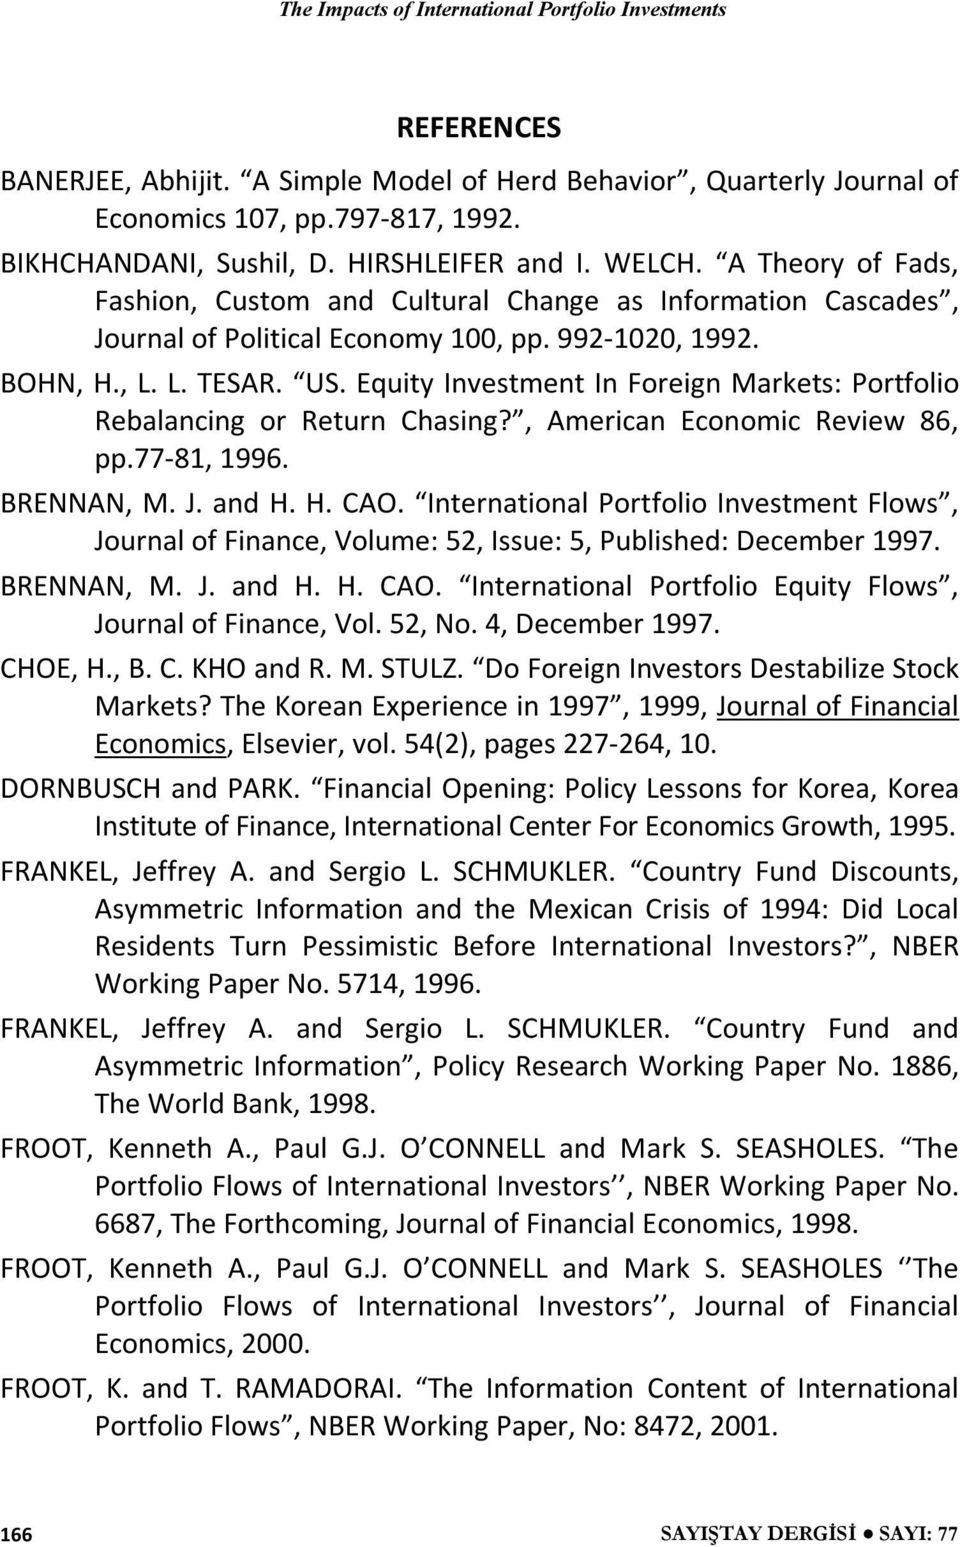 Equy Invesmen In Foregn Markes: Porfolo Rebalancng or Reurn Chasng? Amercan Economc Revew 86 pp.77-81 1996. BRENNAN M. J. and H. H. CAO.